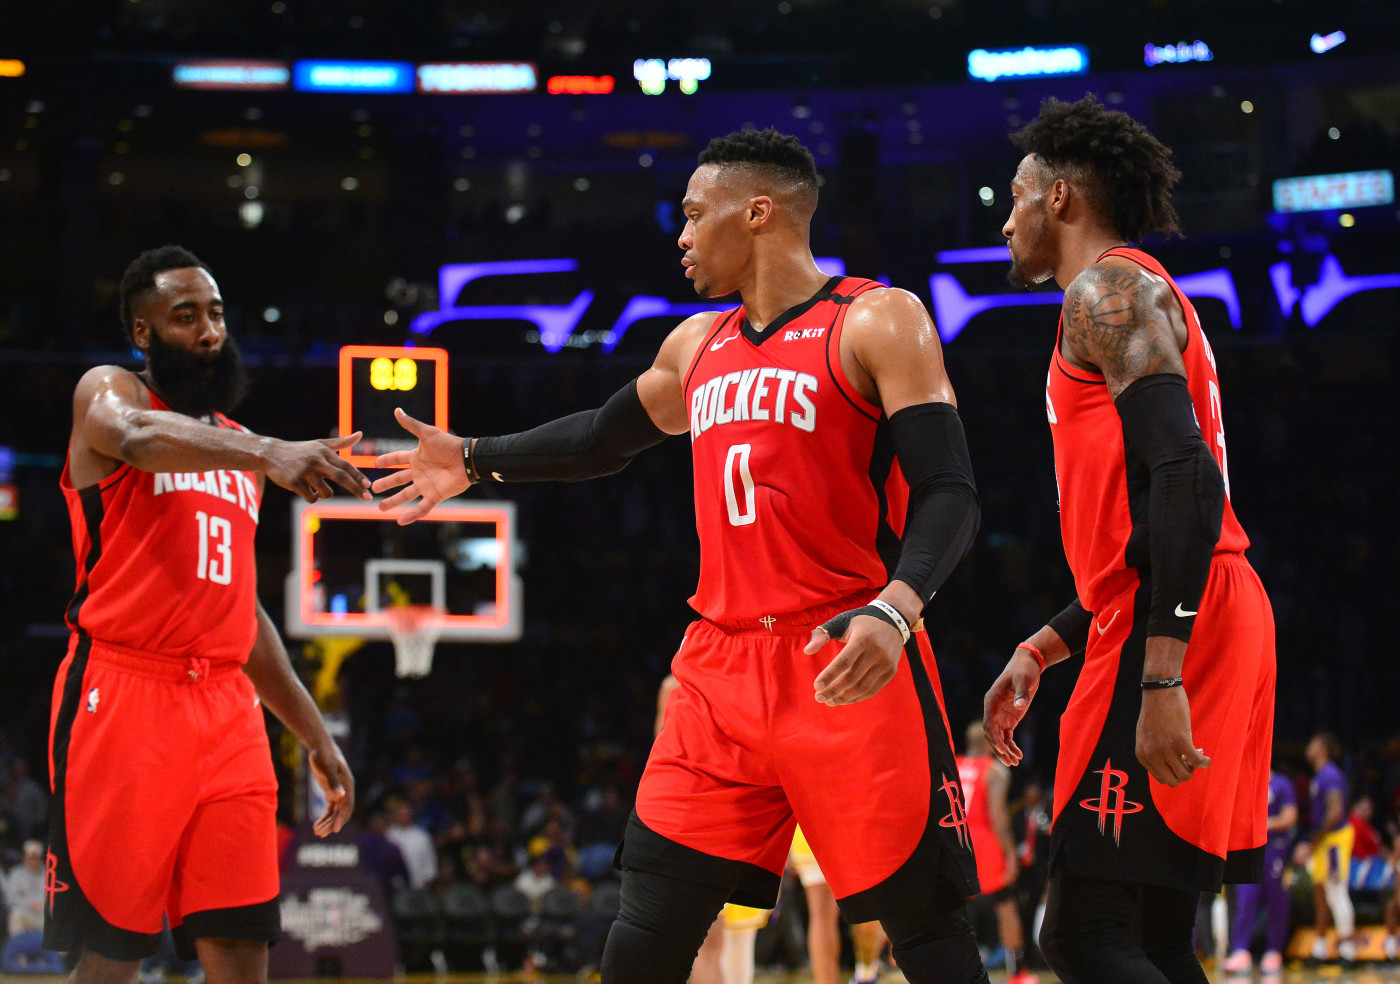 Harden Westbrook Covington Rockets Lakers Feb 2020